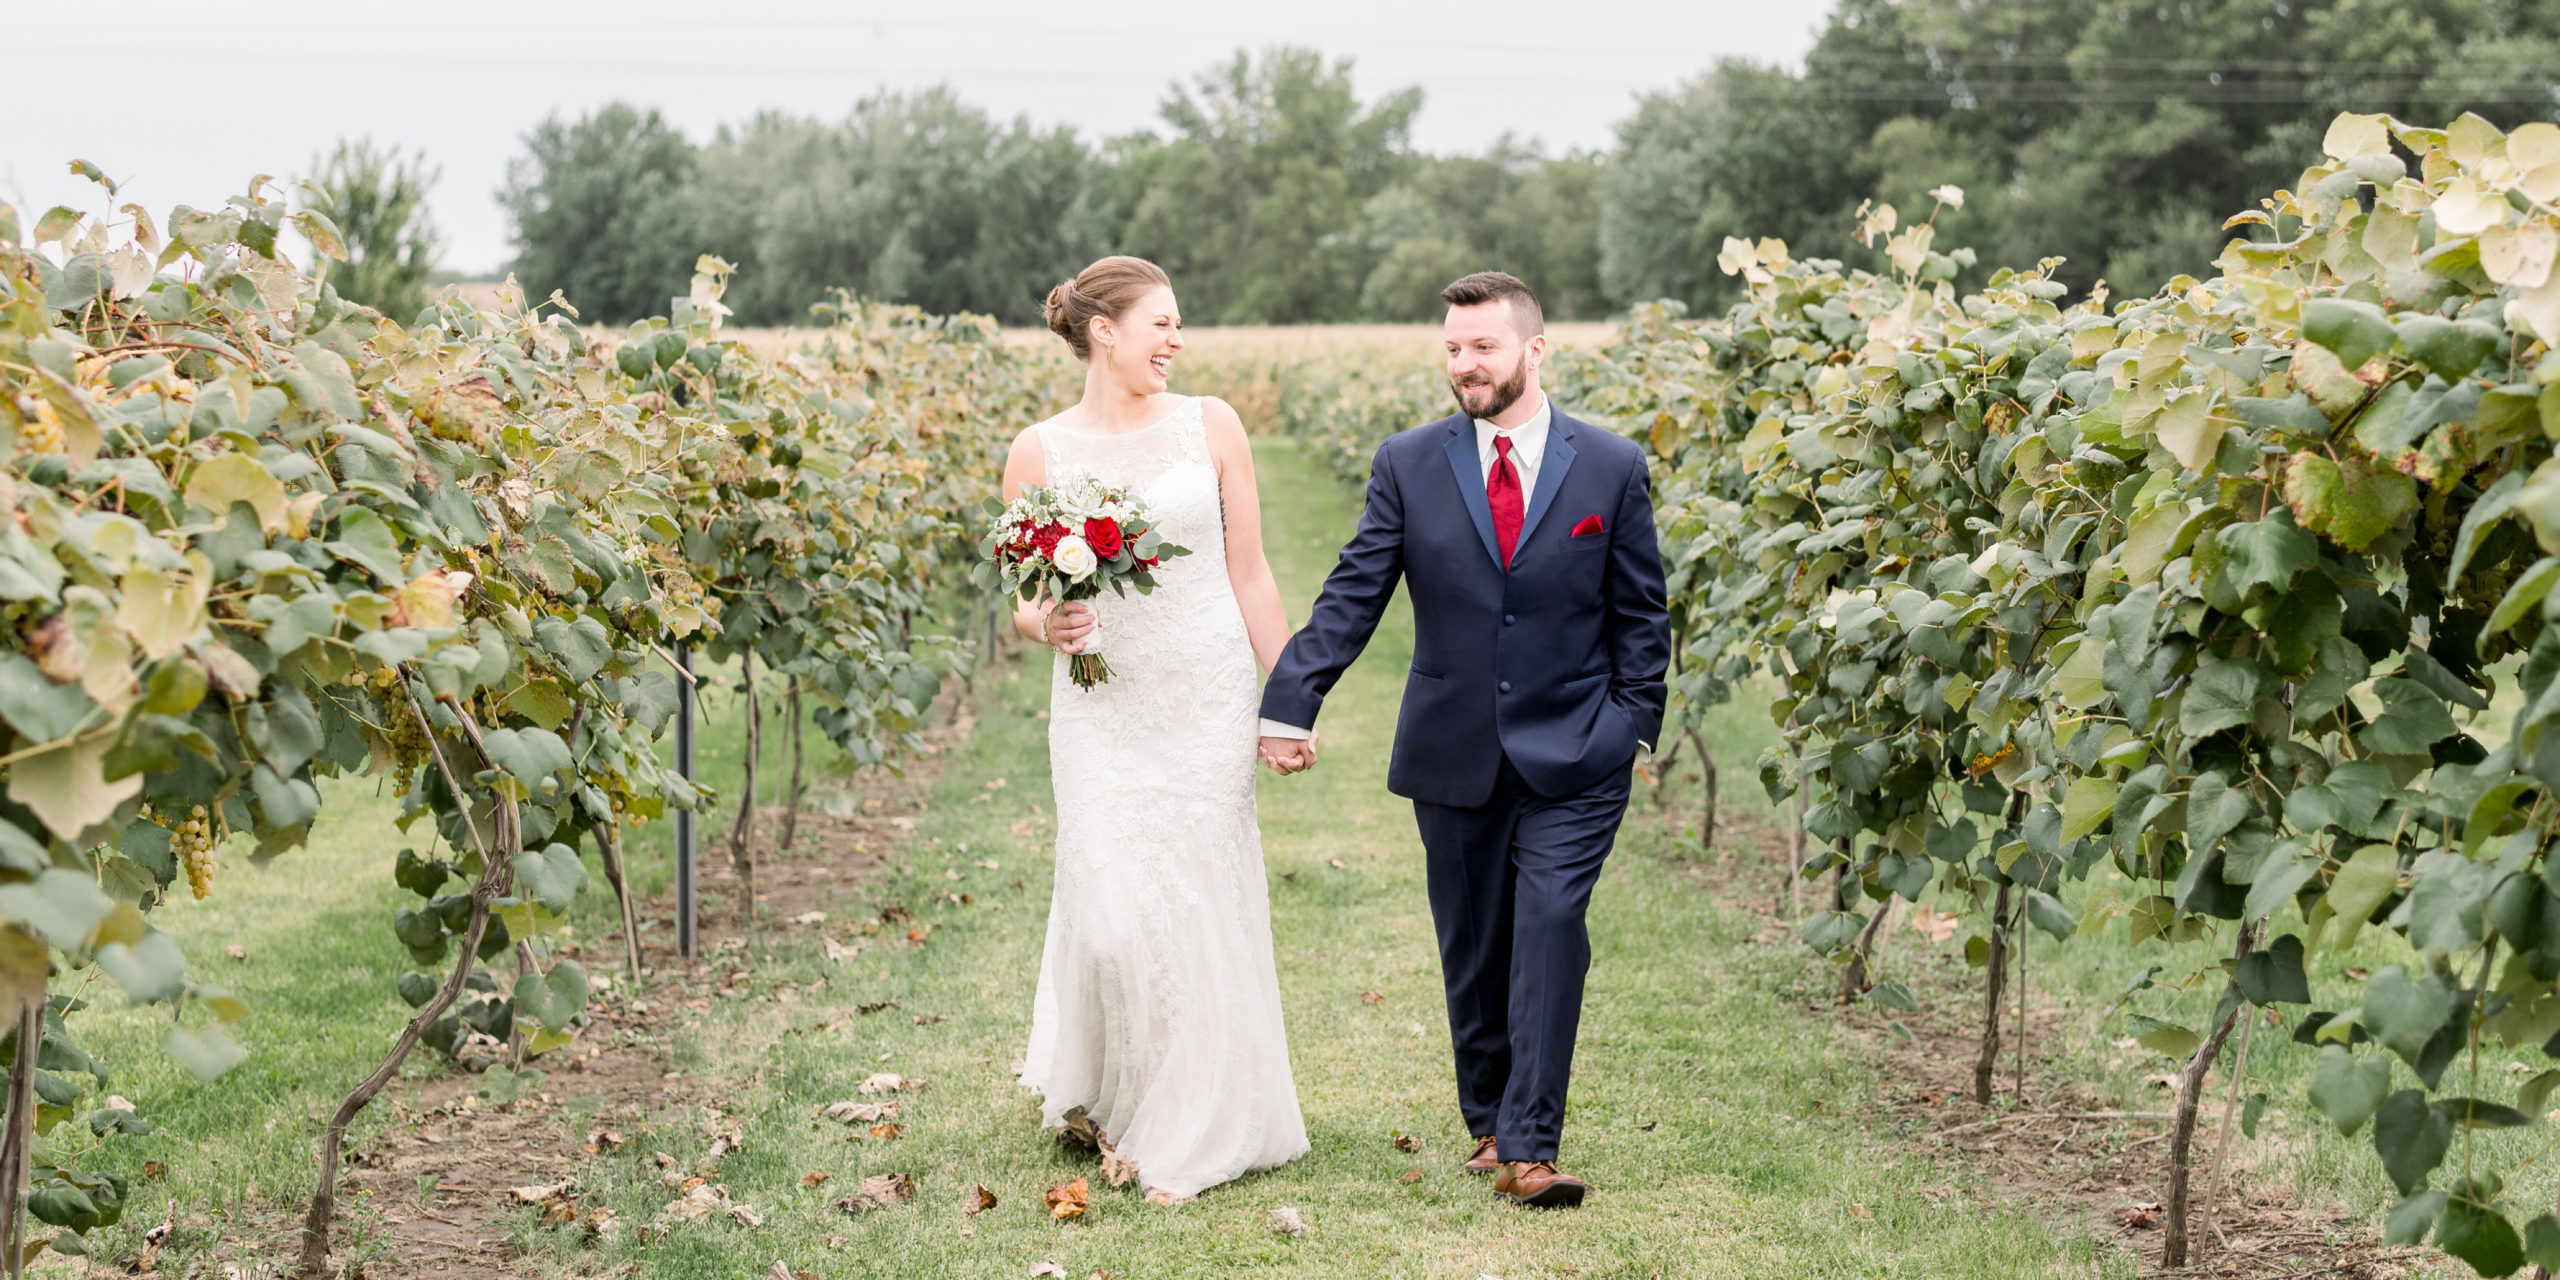 The bride and groom laughing as they walk through the vineyard at sunset at Tycoga Winery.